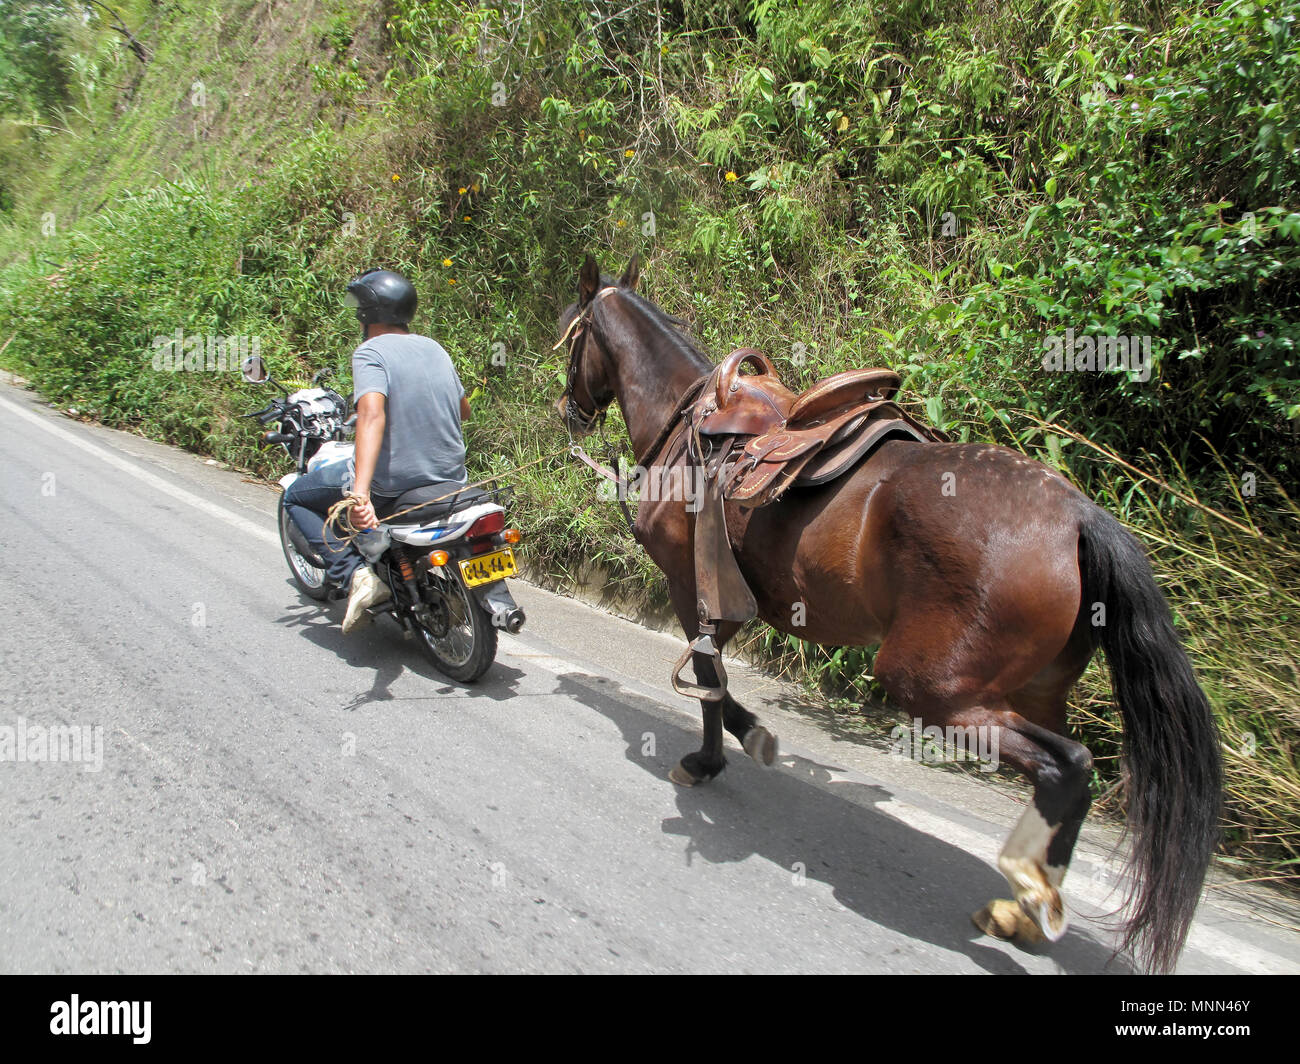 Local man towing a horse with his moped, Colombia - Stock Image